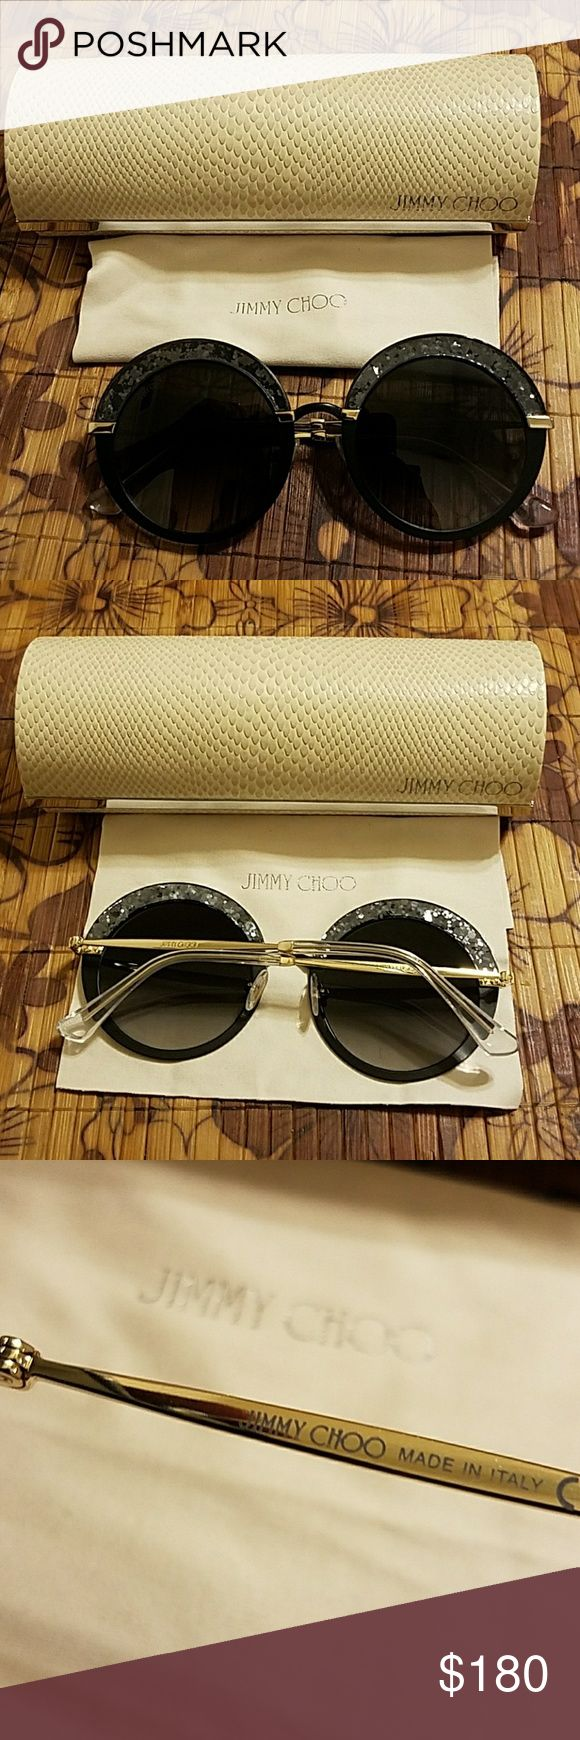 Jimmy Choo gotha/s Jimmy Choo gotha/s. made in Italy.  new and never been used . Can be verified by typing Jimmy Choo gotha/s in Google. Jimmy Choo Accessories Sunglasses